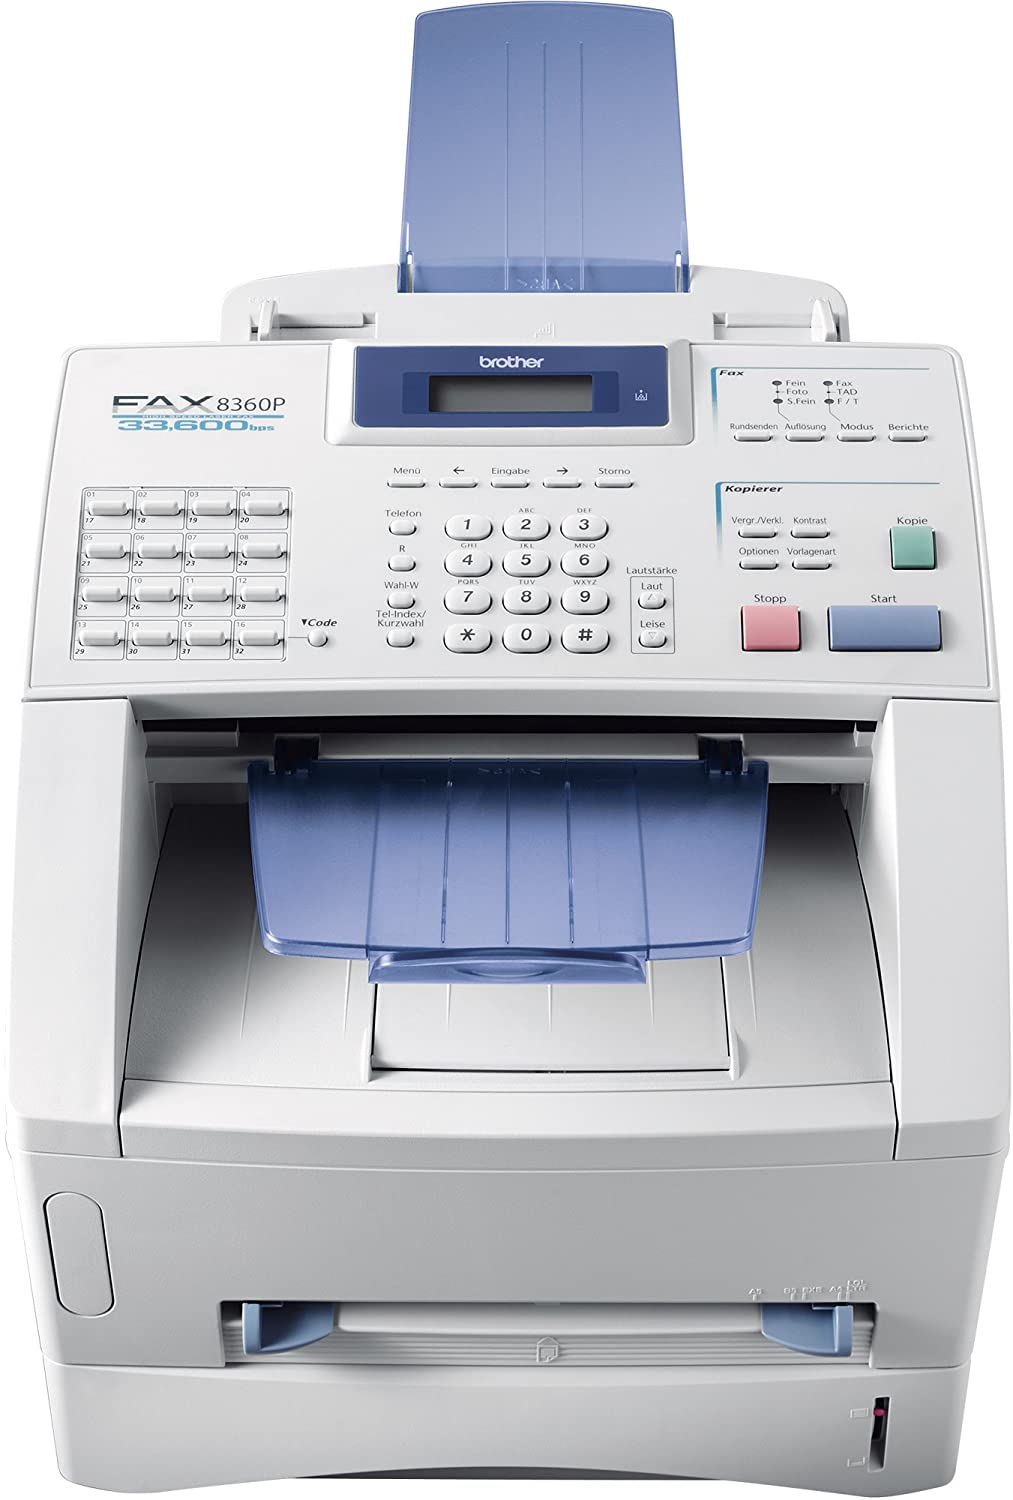 FAX BROTHER FAX8360P BLANC